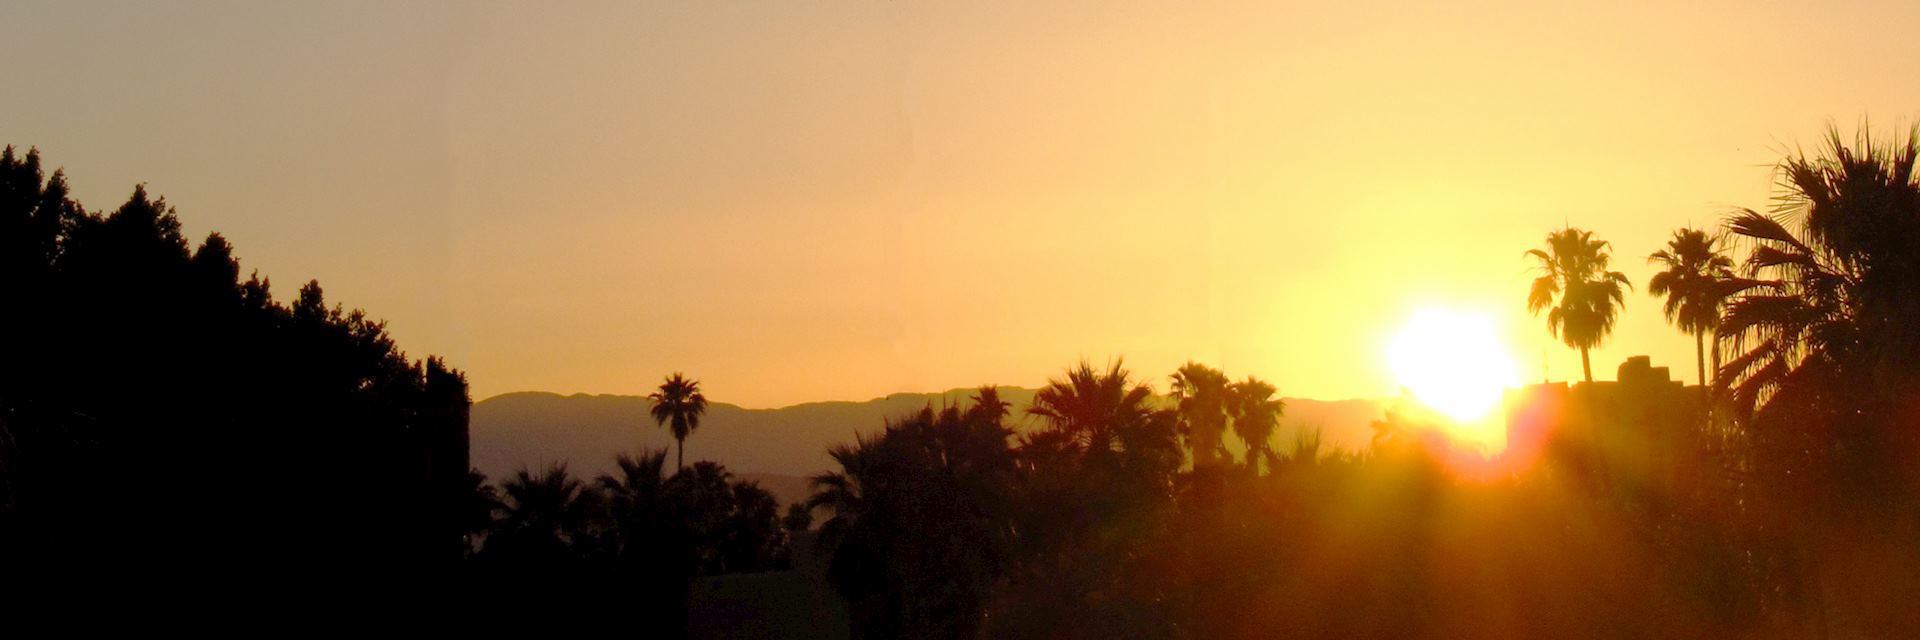 Sunrise at Palm Springs, California